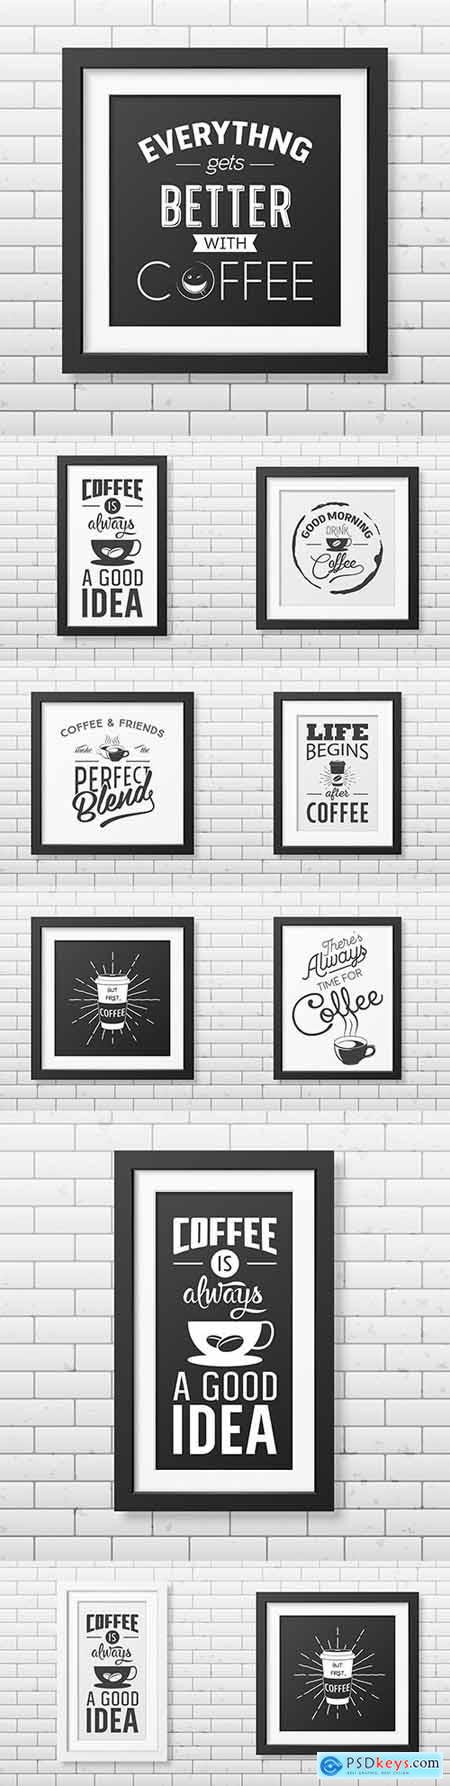 Coffee quote typographic in realistic square frame on brick wall